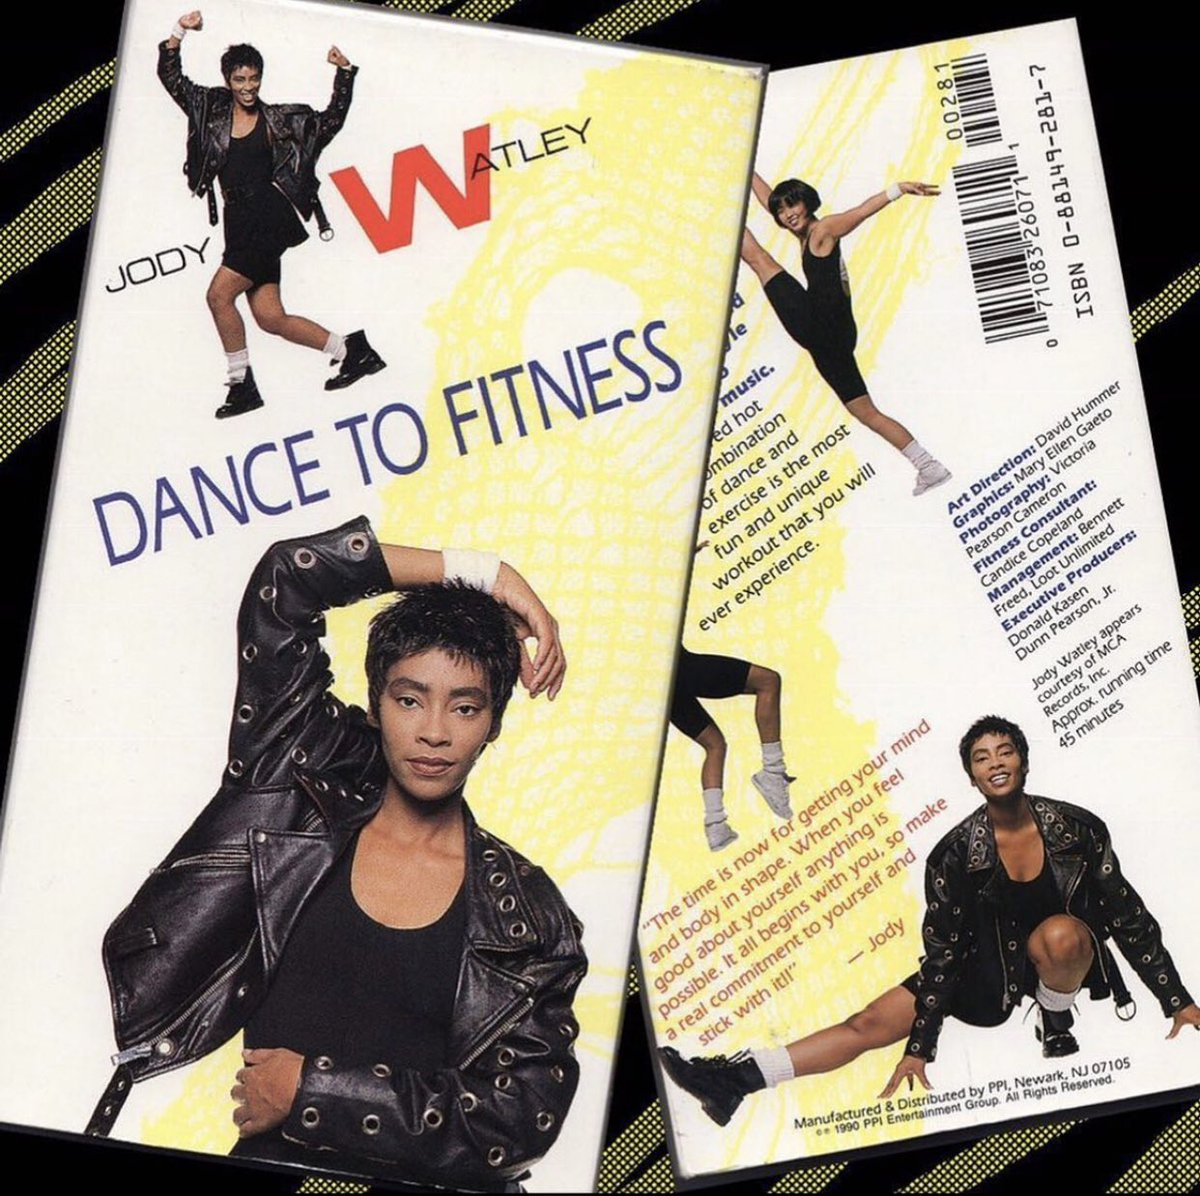 """#tbt 90's but Still True!  —  """"The time is now for getting your mind and body in shape. When you feel good about yourself anything is possible. It all begins with you, so make a commitment to yourself and stick with it.""""  - Jody Watley"""